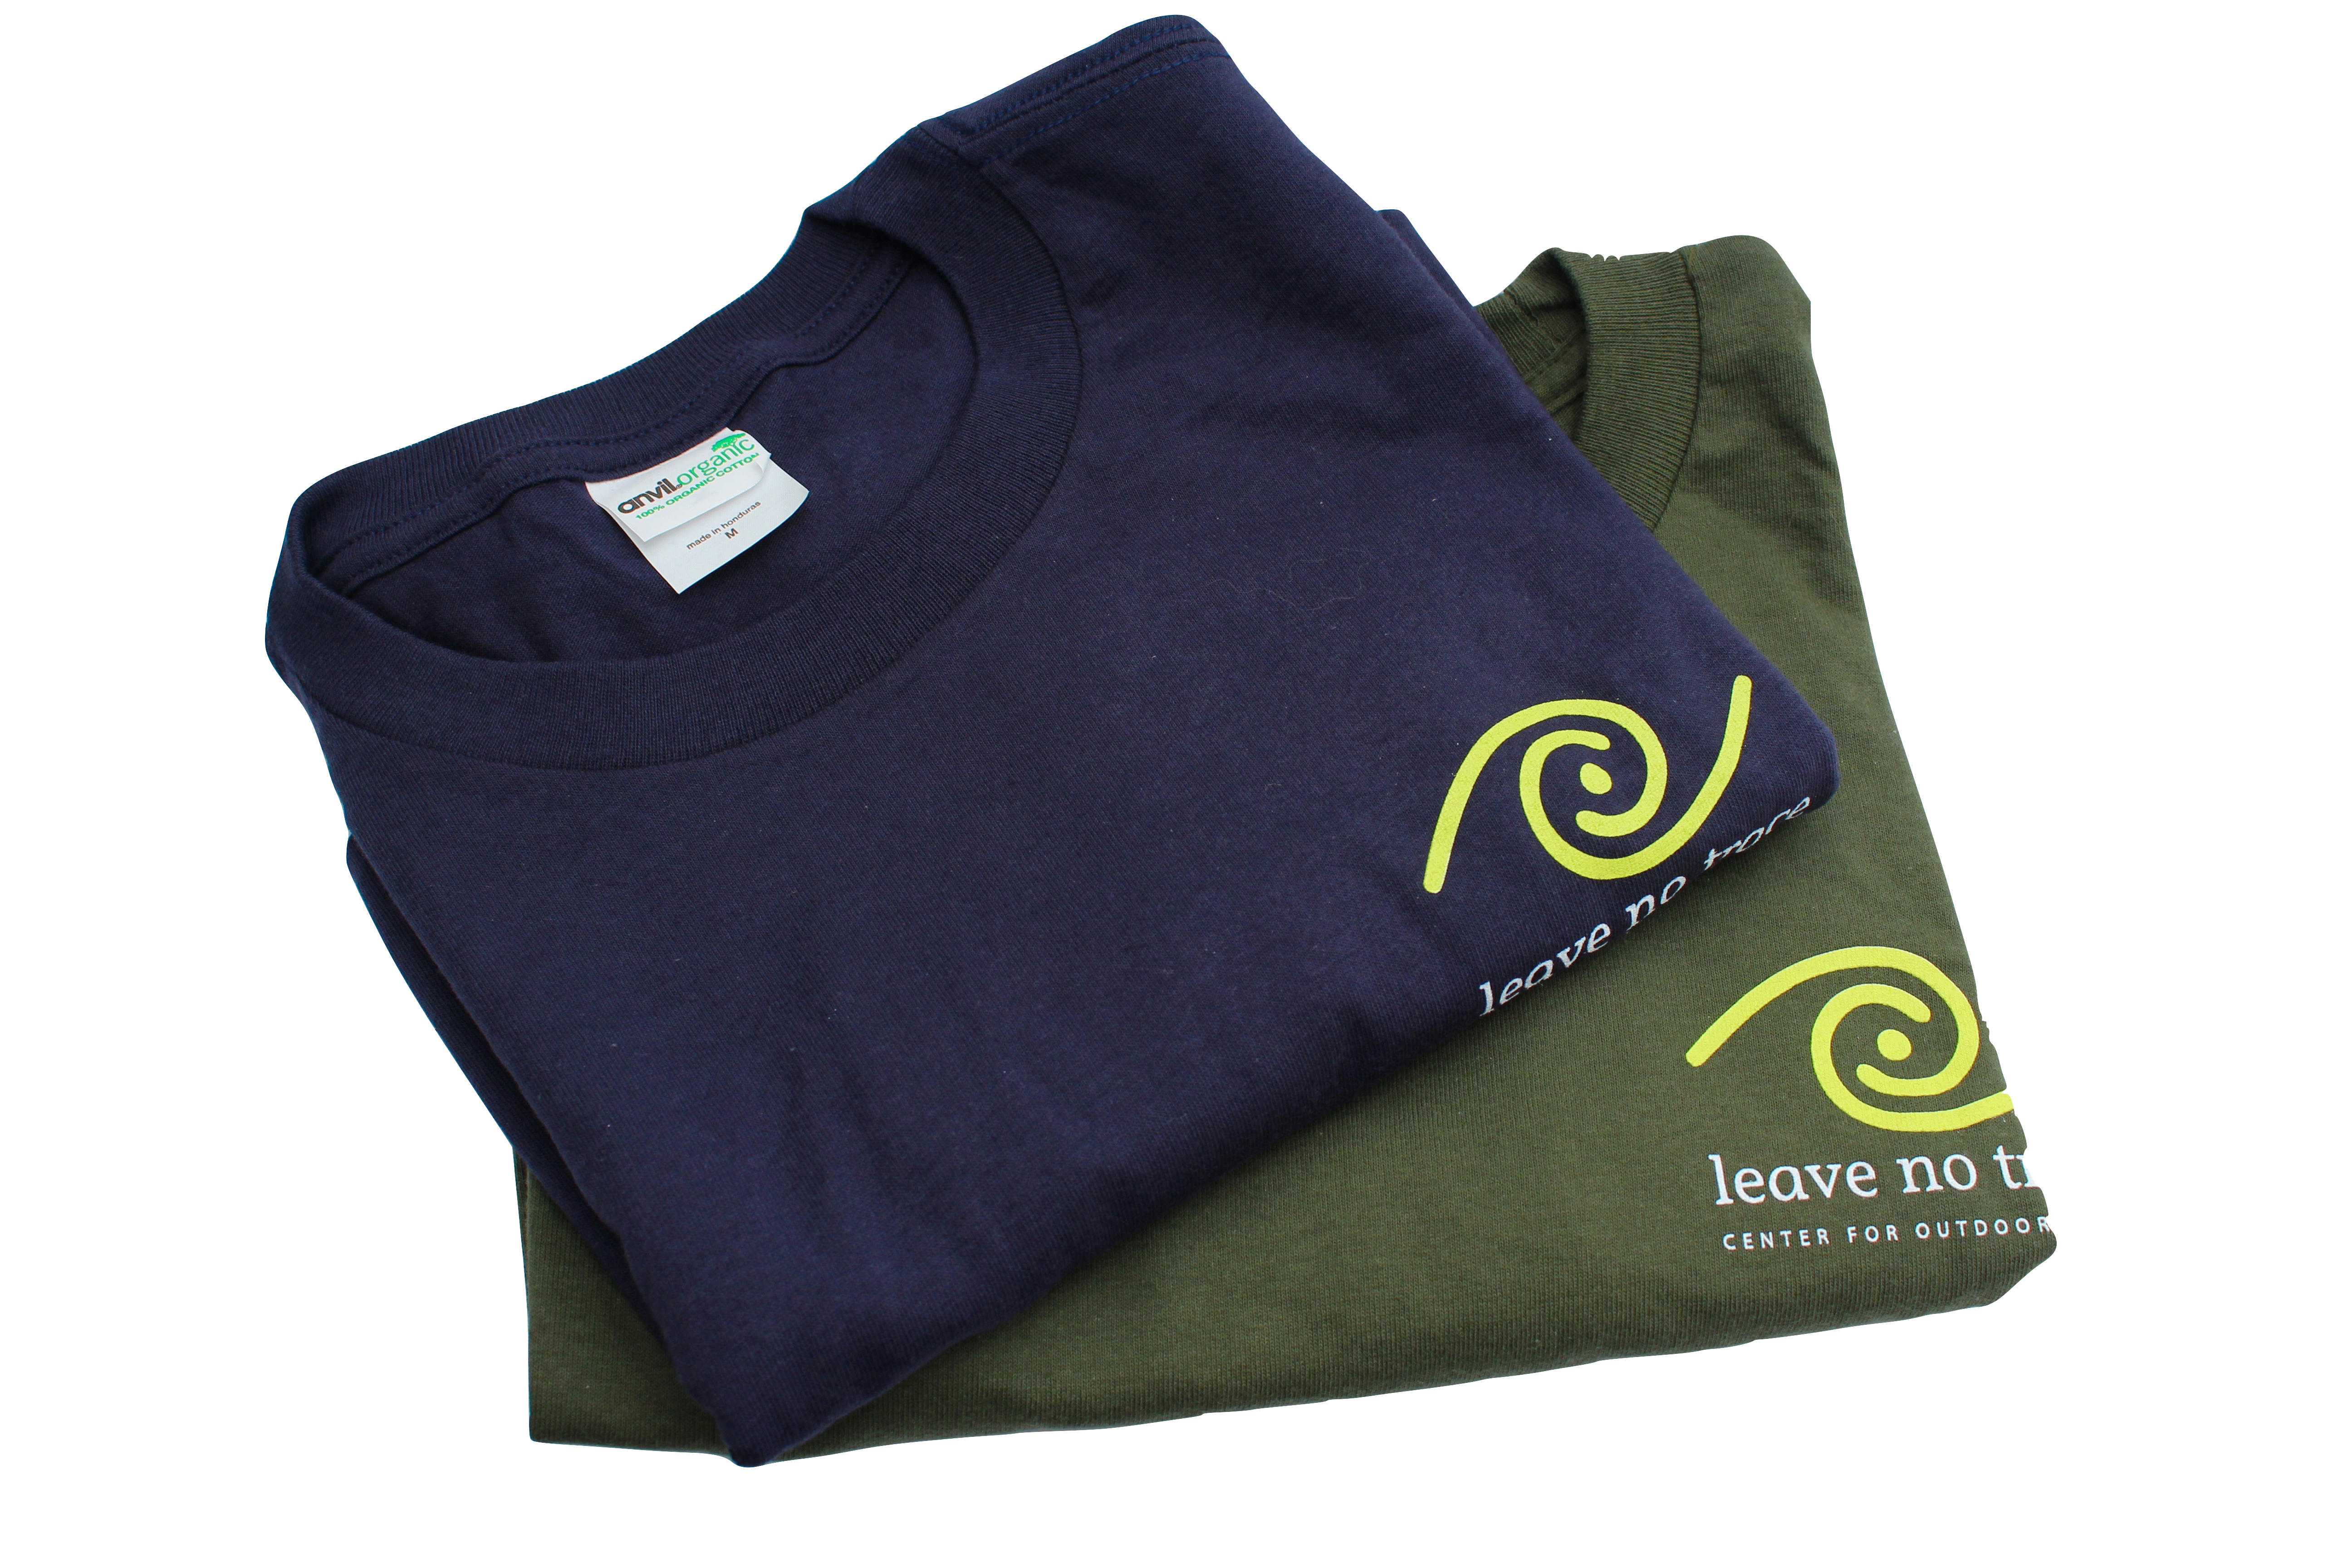 Shirts | Leave No Trace